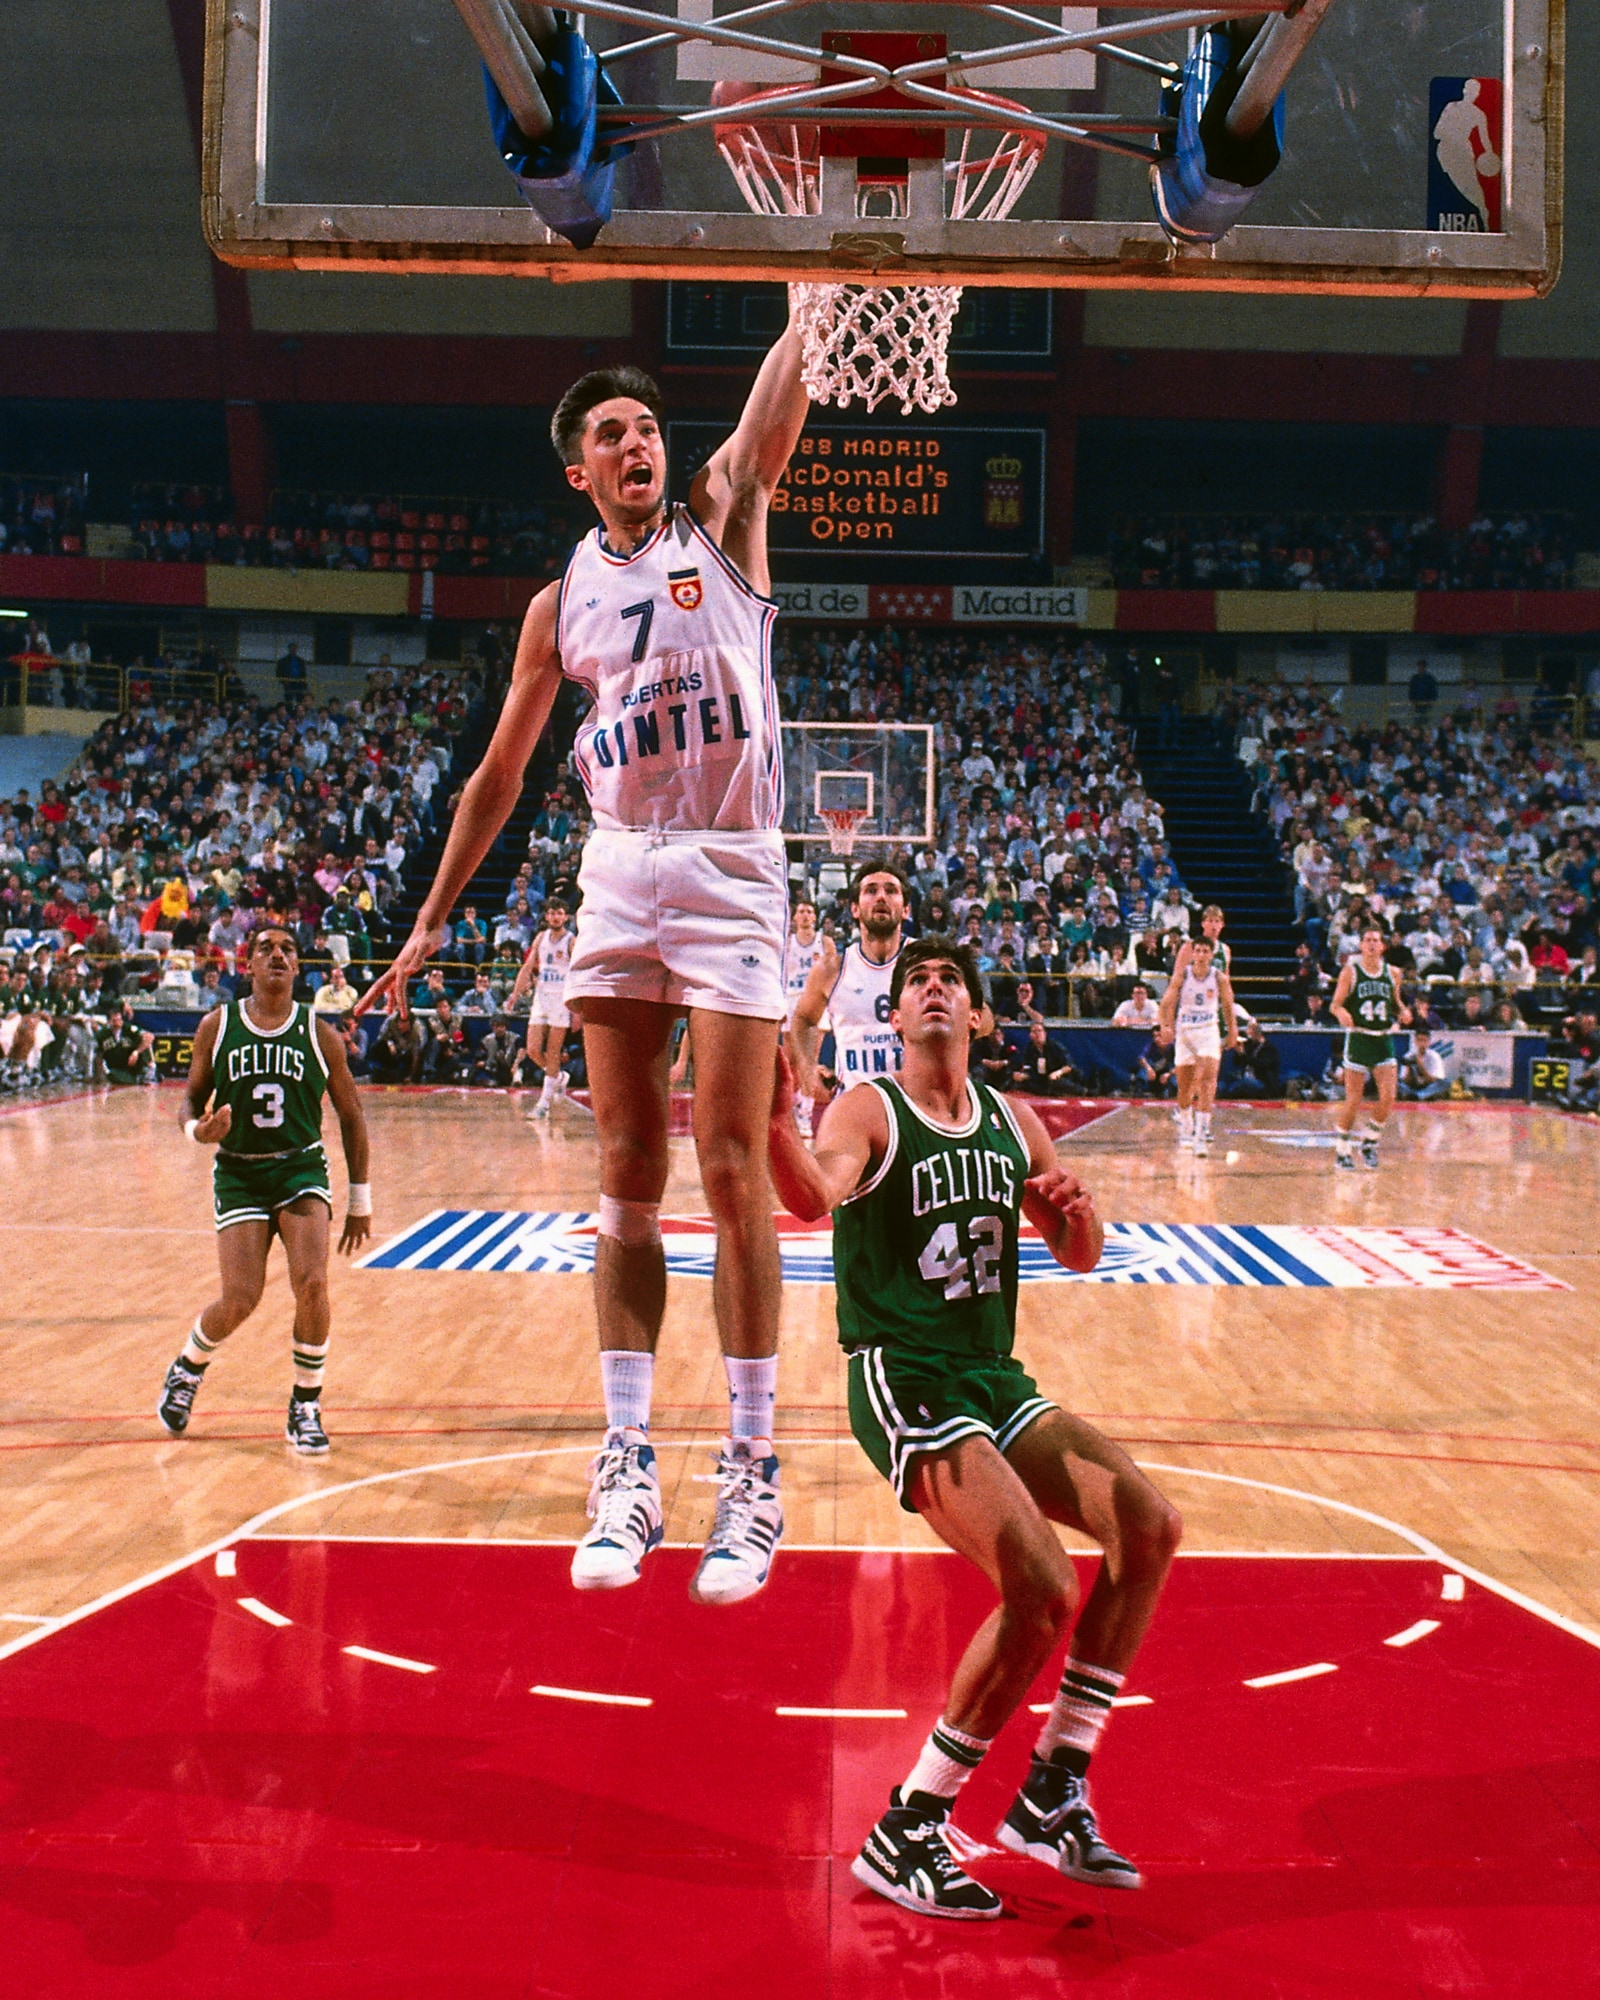 Toni Kukoc dunks in a game against the Boston Celtics during the McDonalds Championship in 1988.